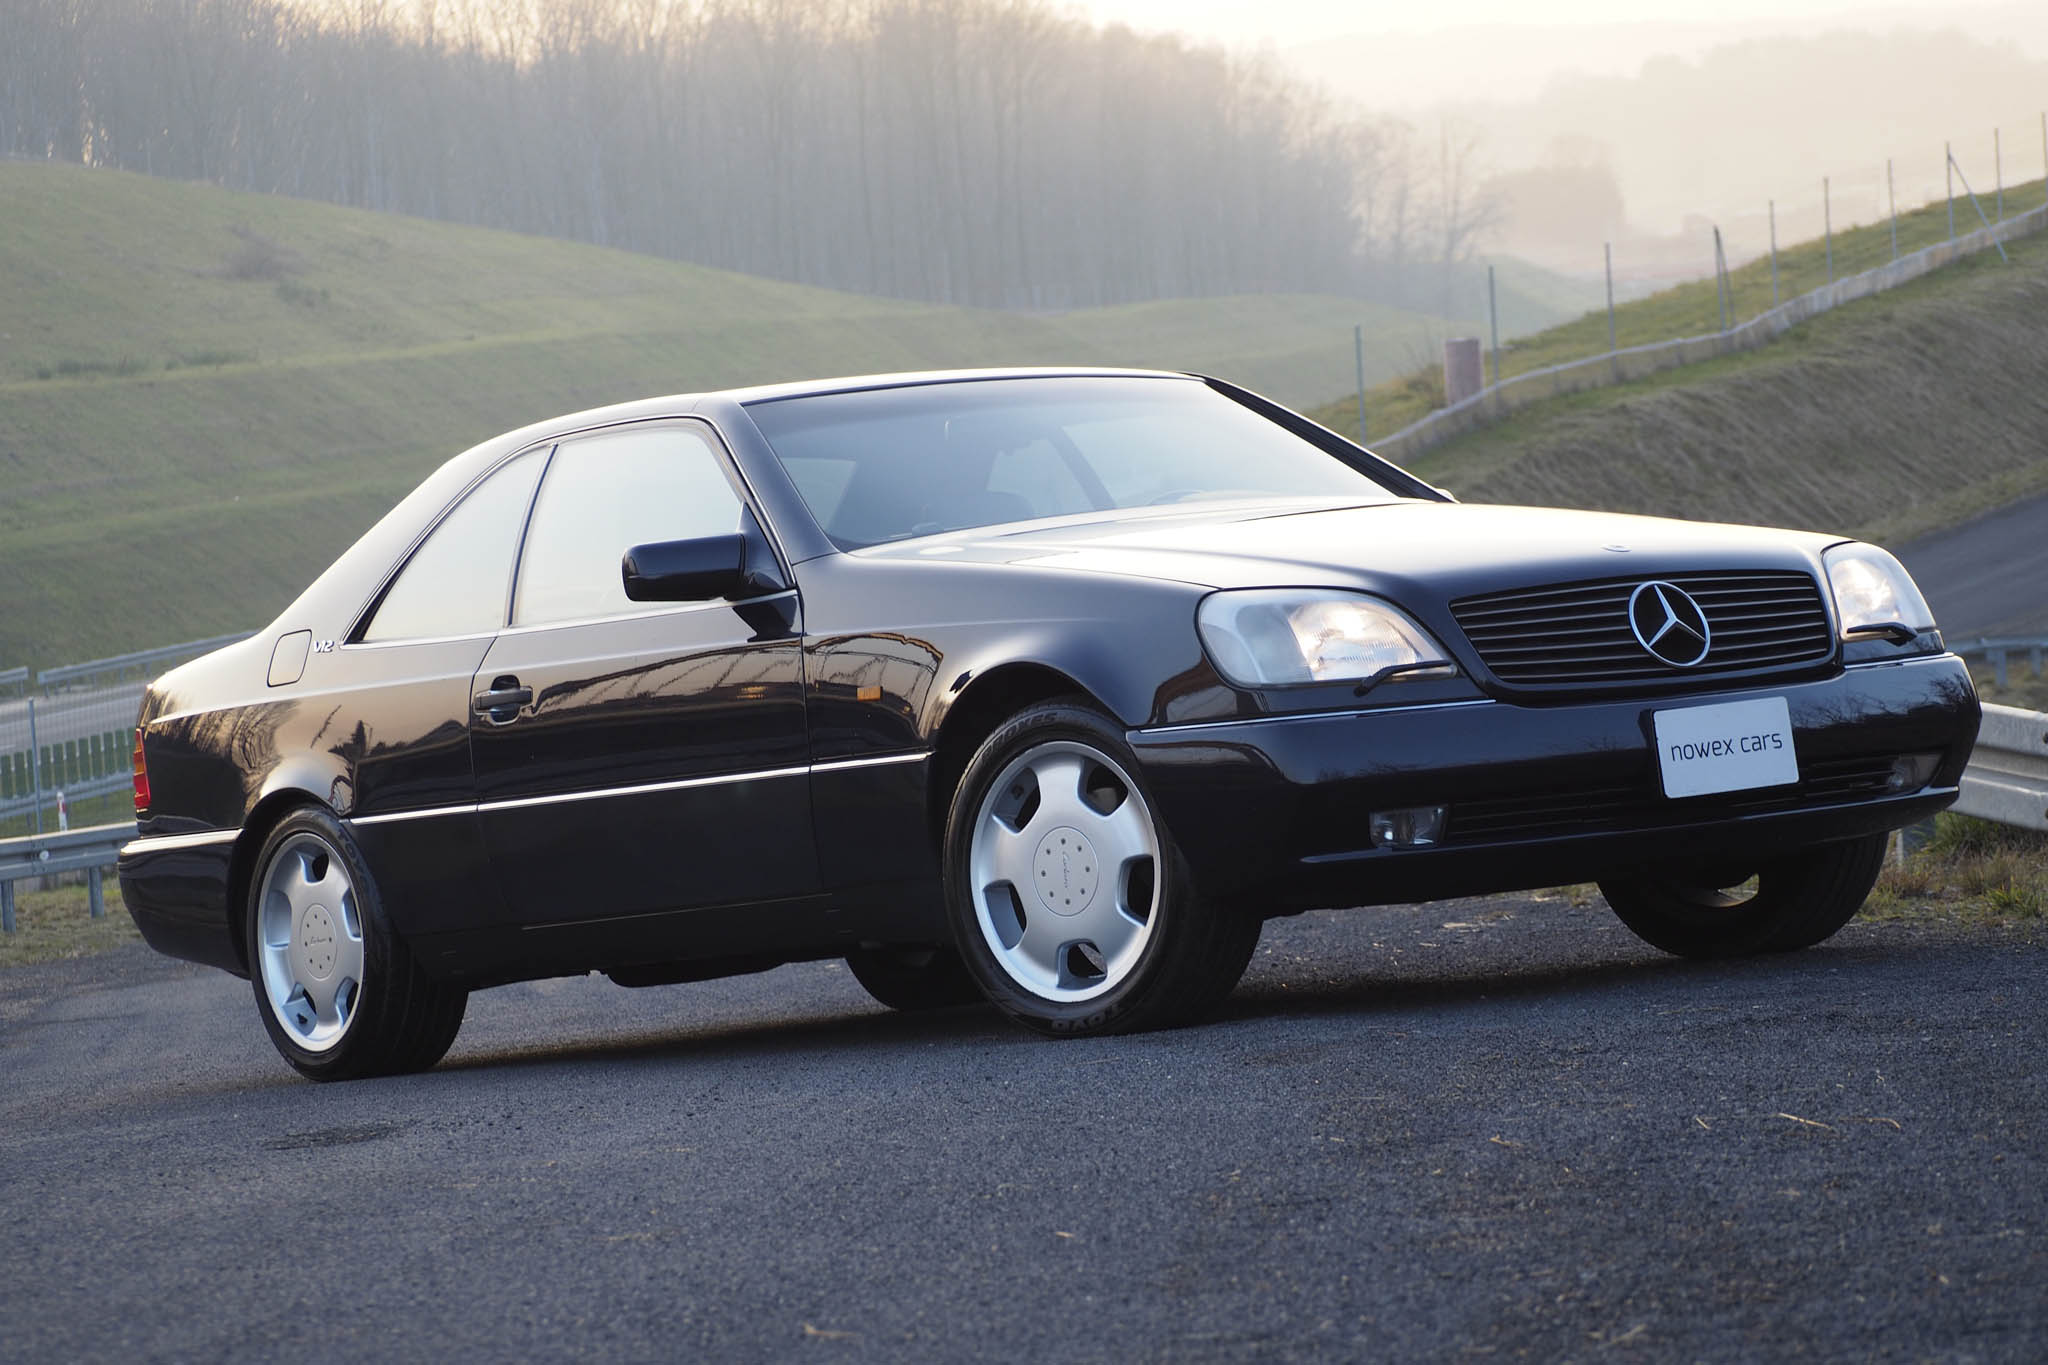 96 mercedes-benz cl 600 | nowex cars